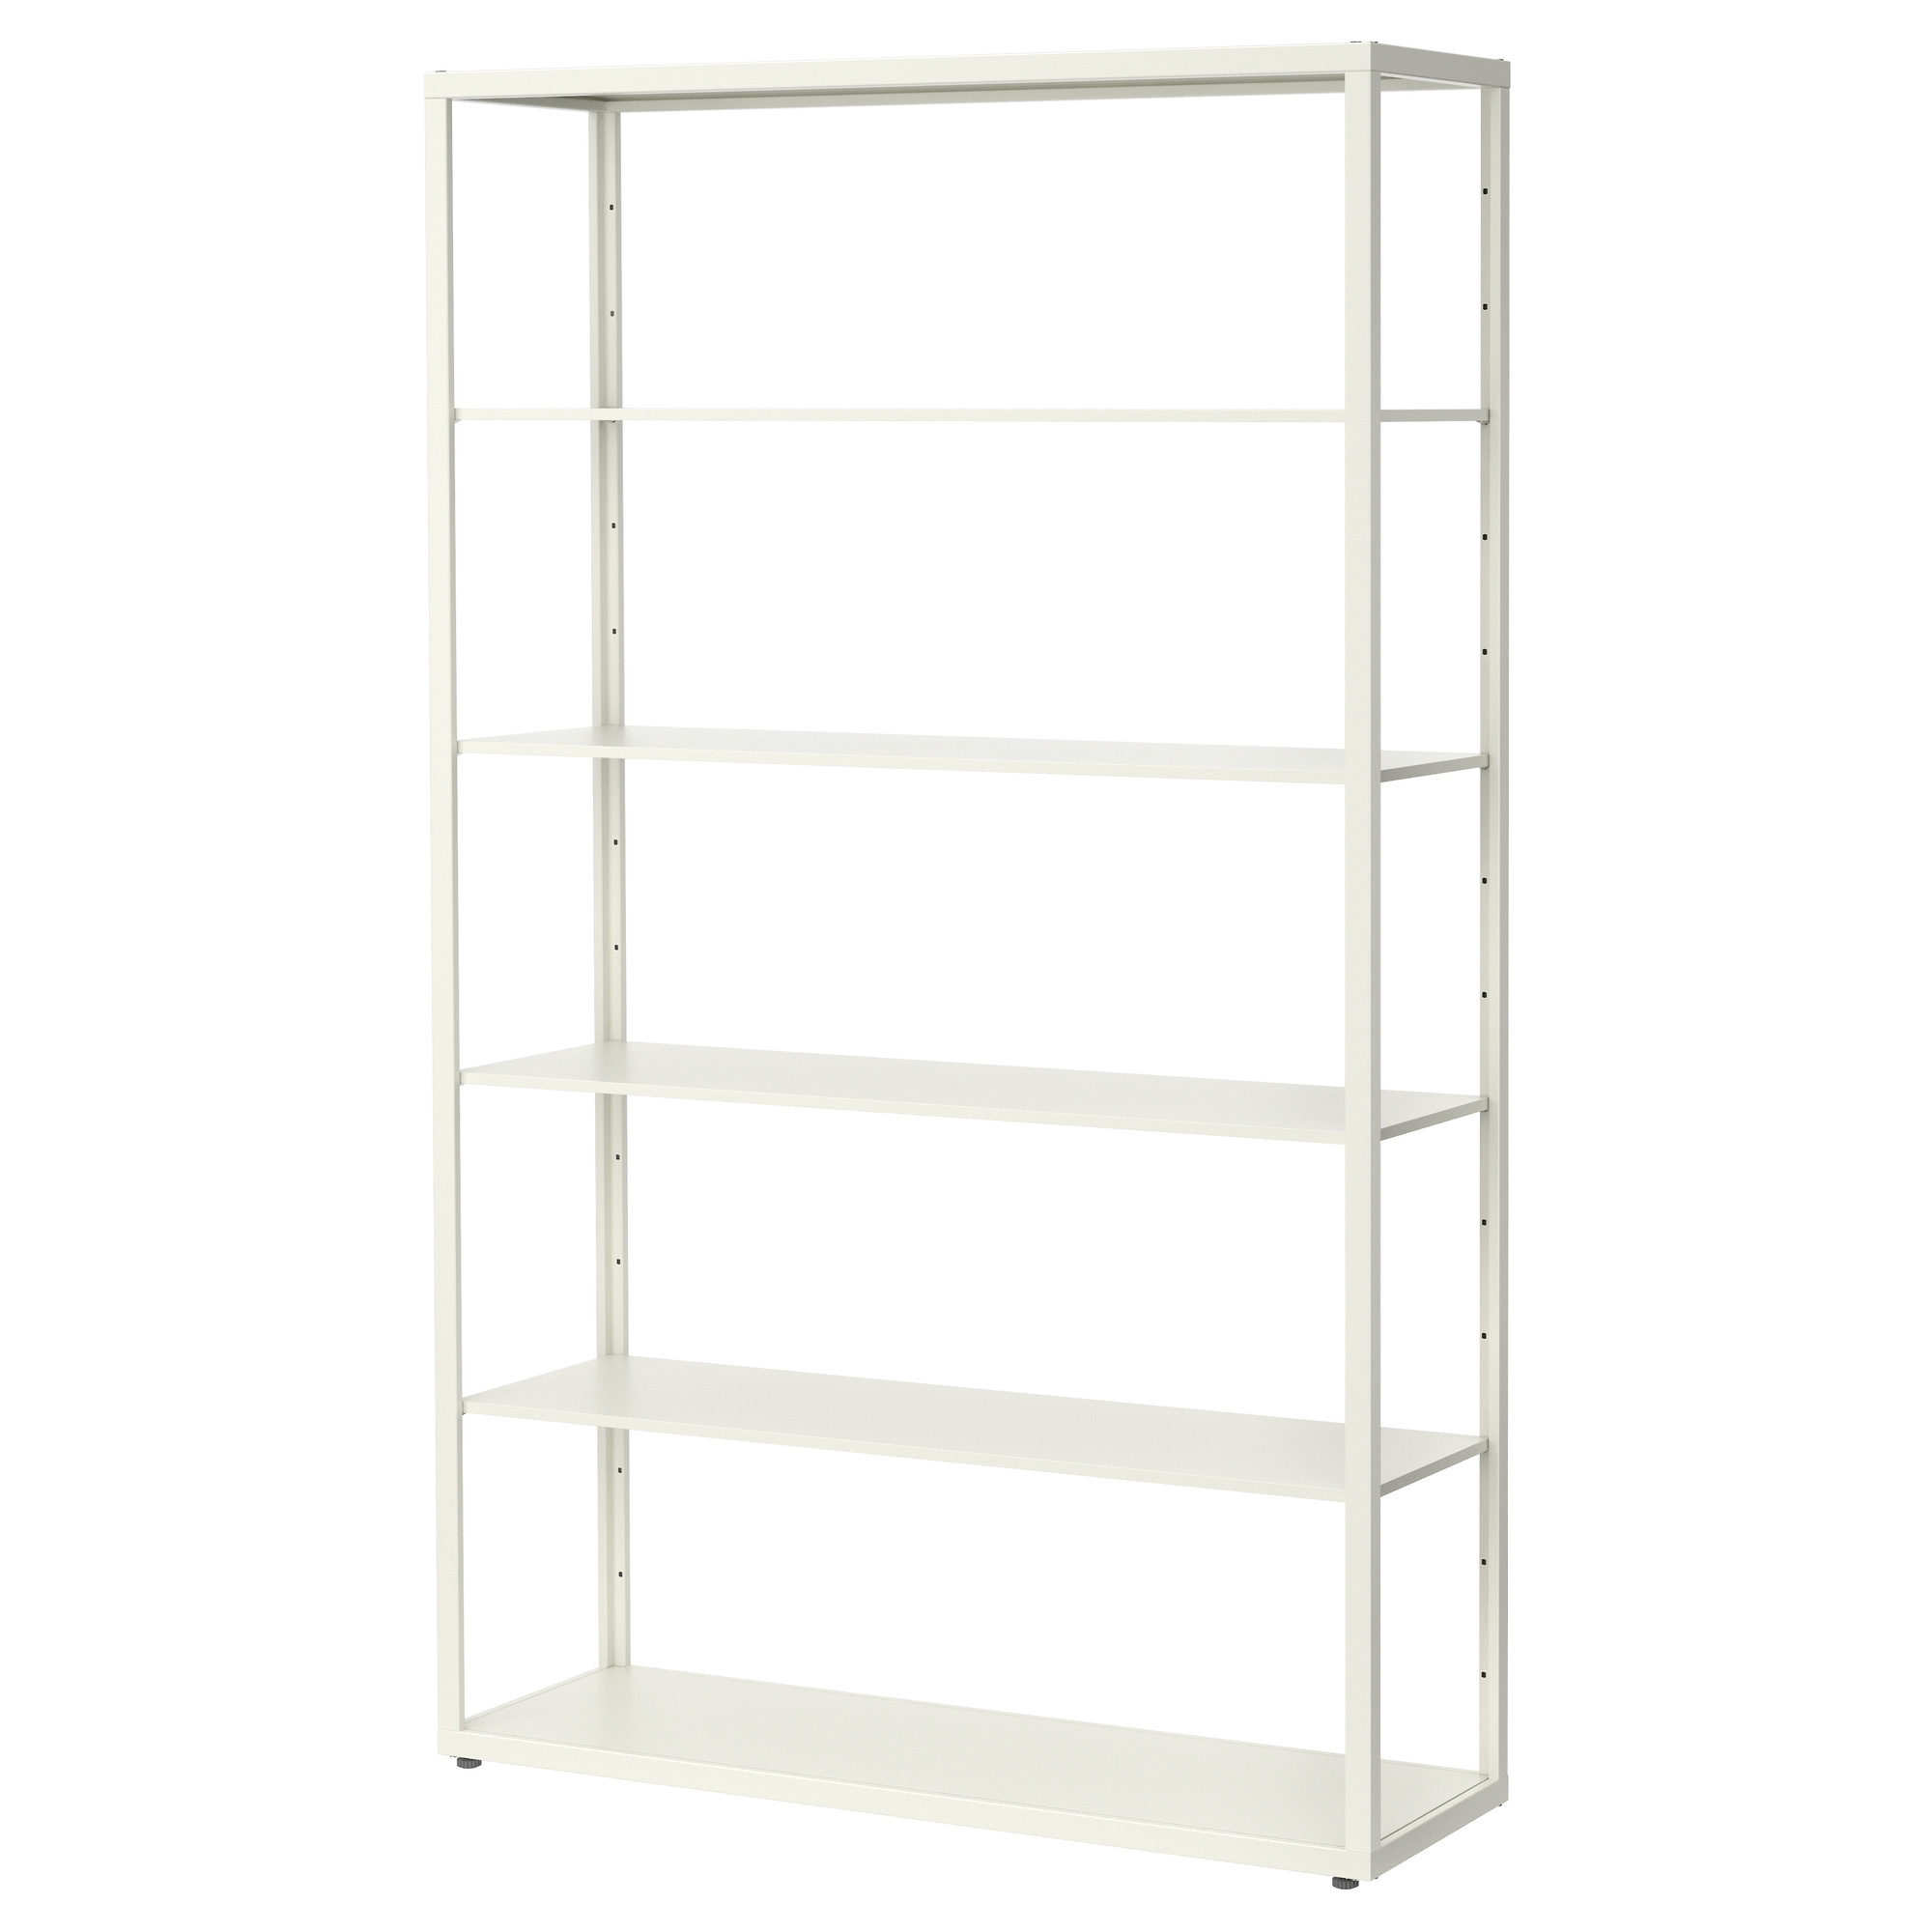 Popular Photo of White Shelving Units